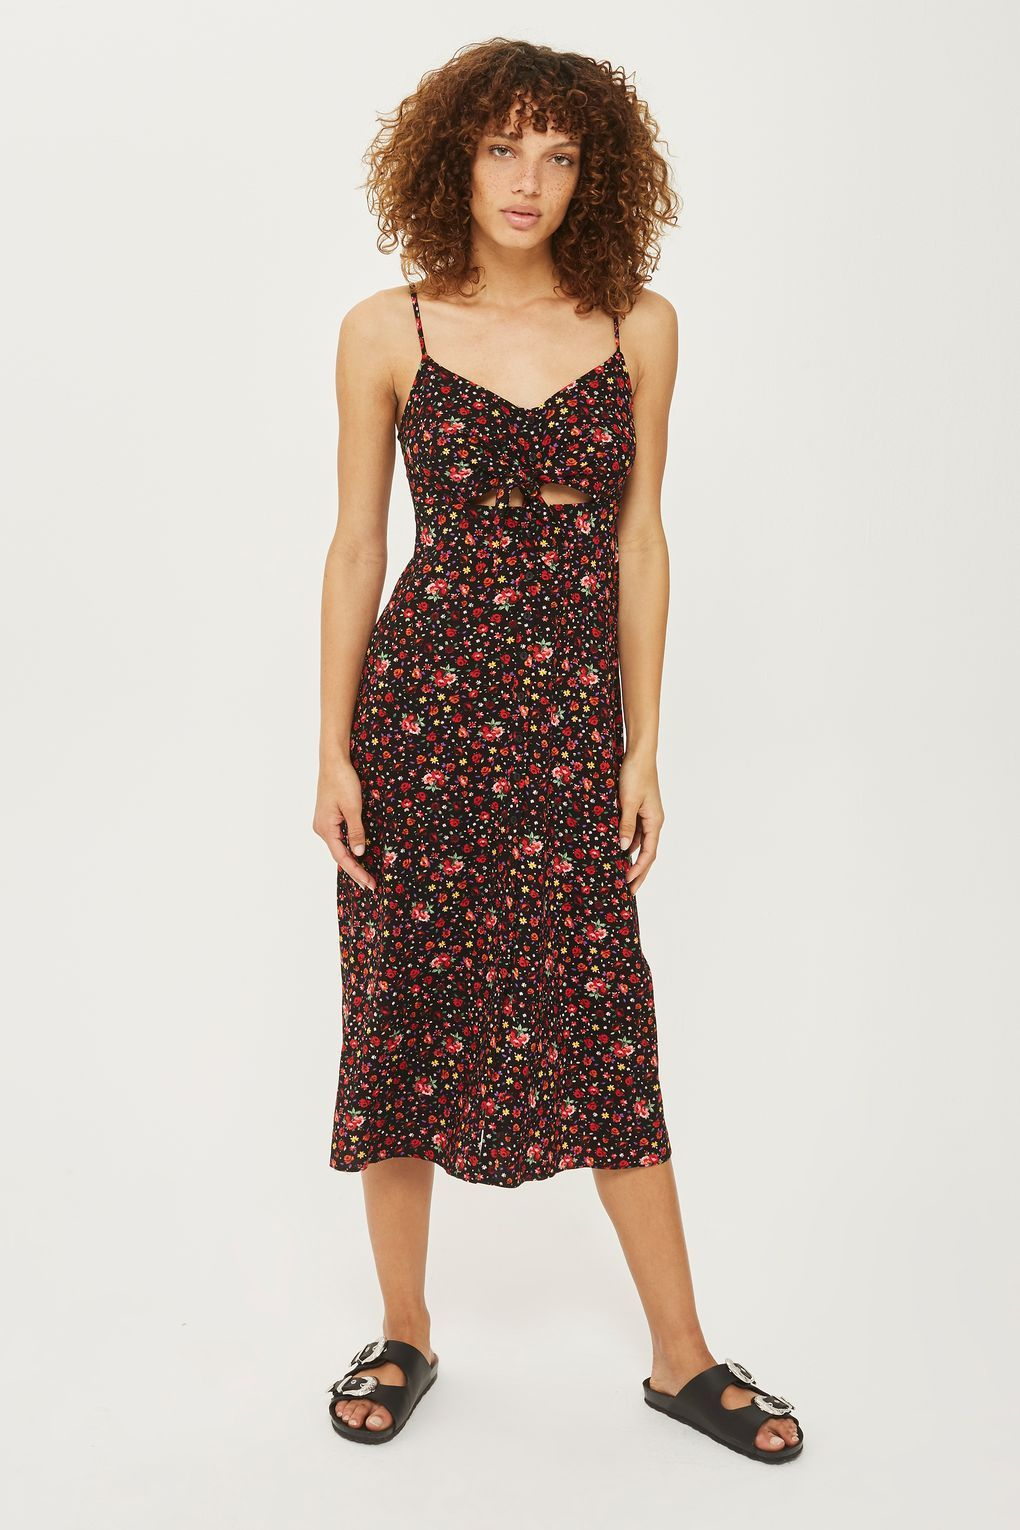 e59b1d7388 DITSY Knot Tie Front Dress - New In Dresses - New In - Topshop Ditsy Floral